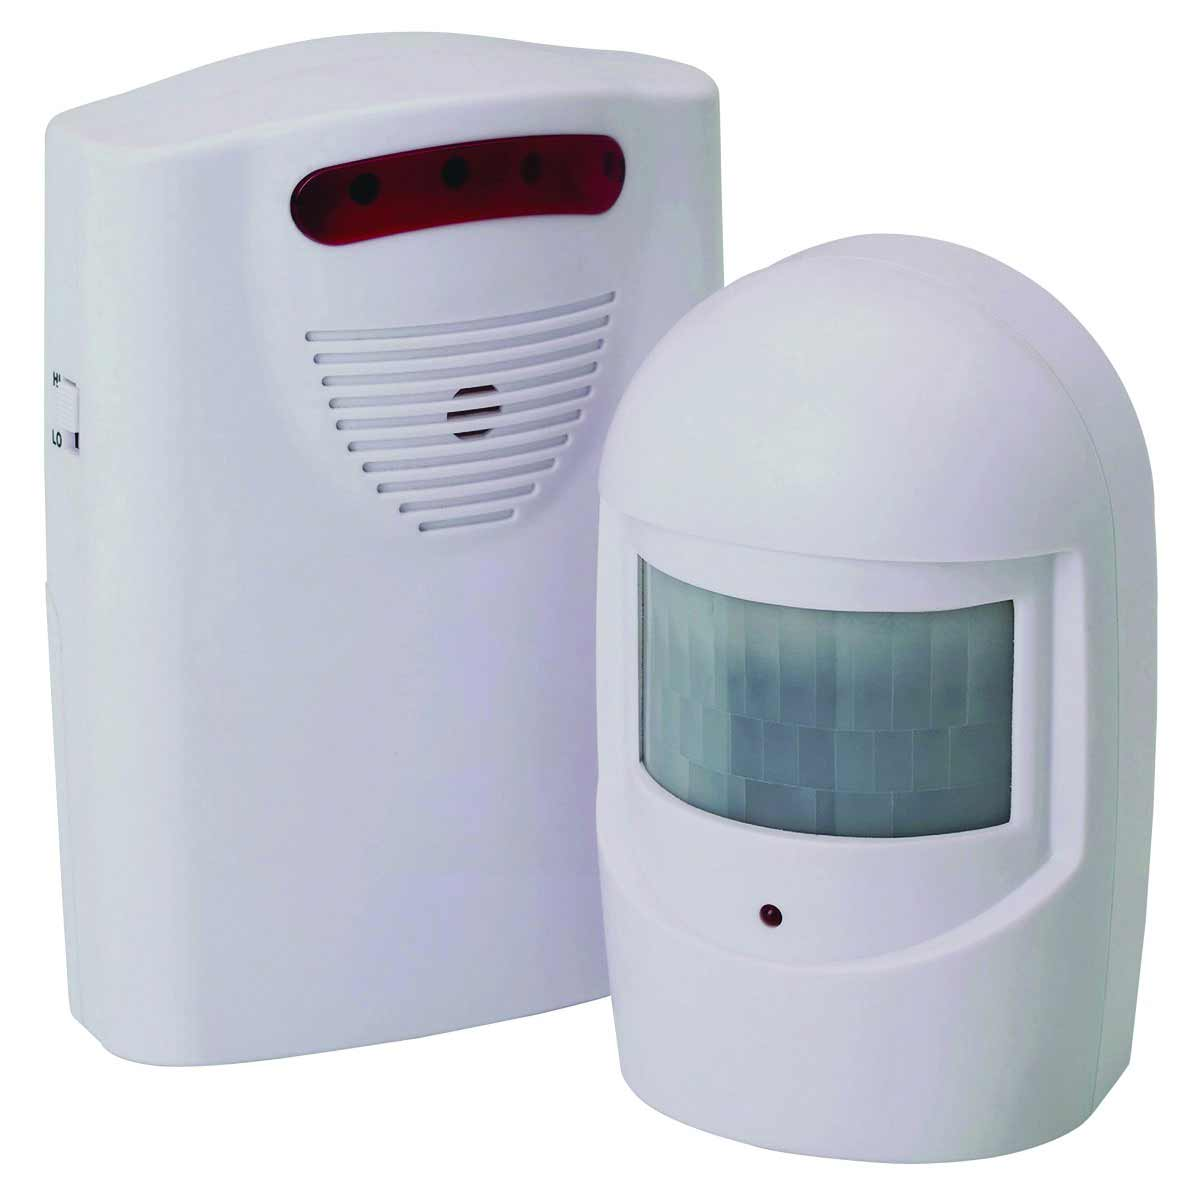 Driveway Wireless Alarm Alert System from Bunker Hill